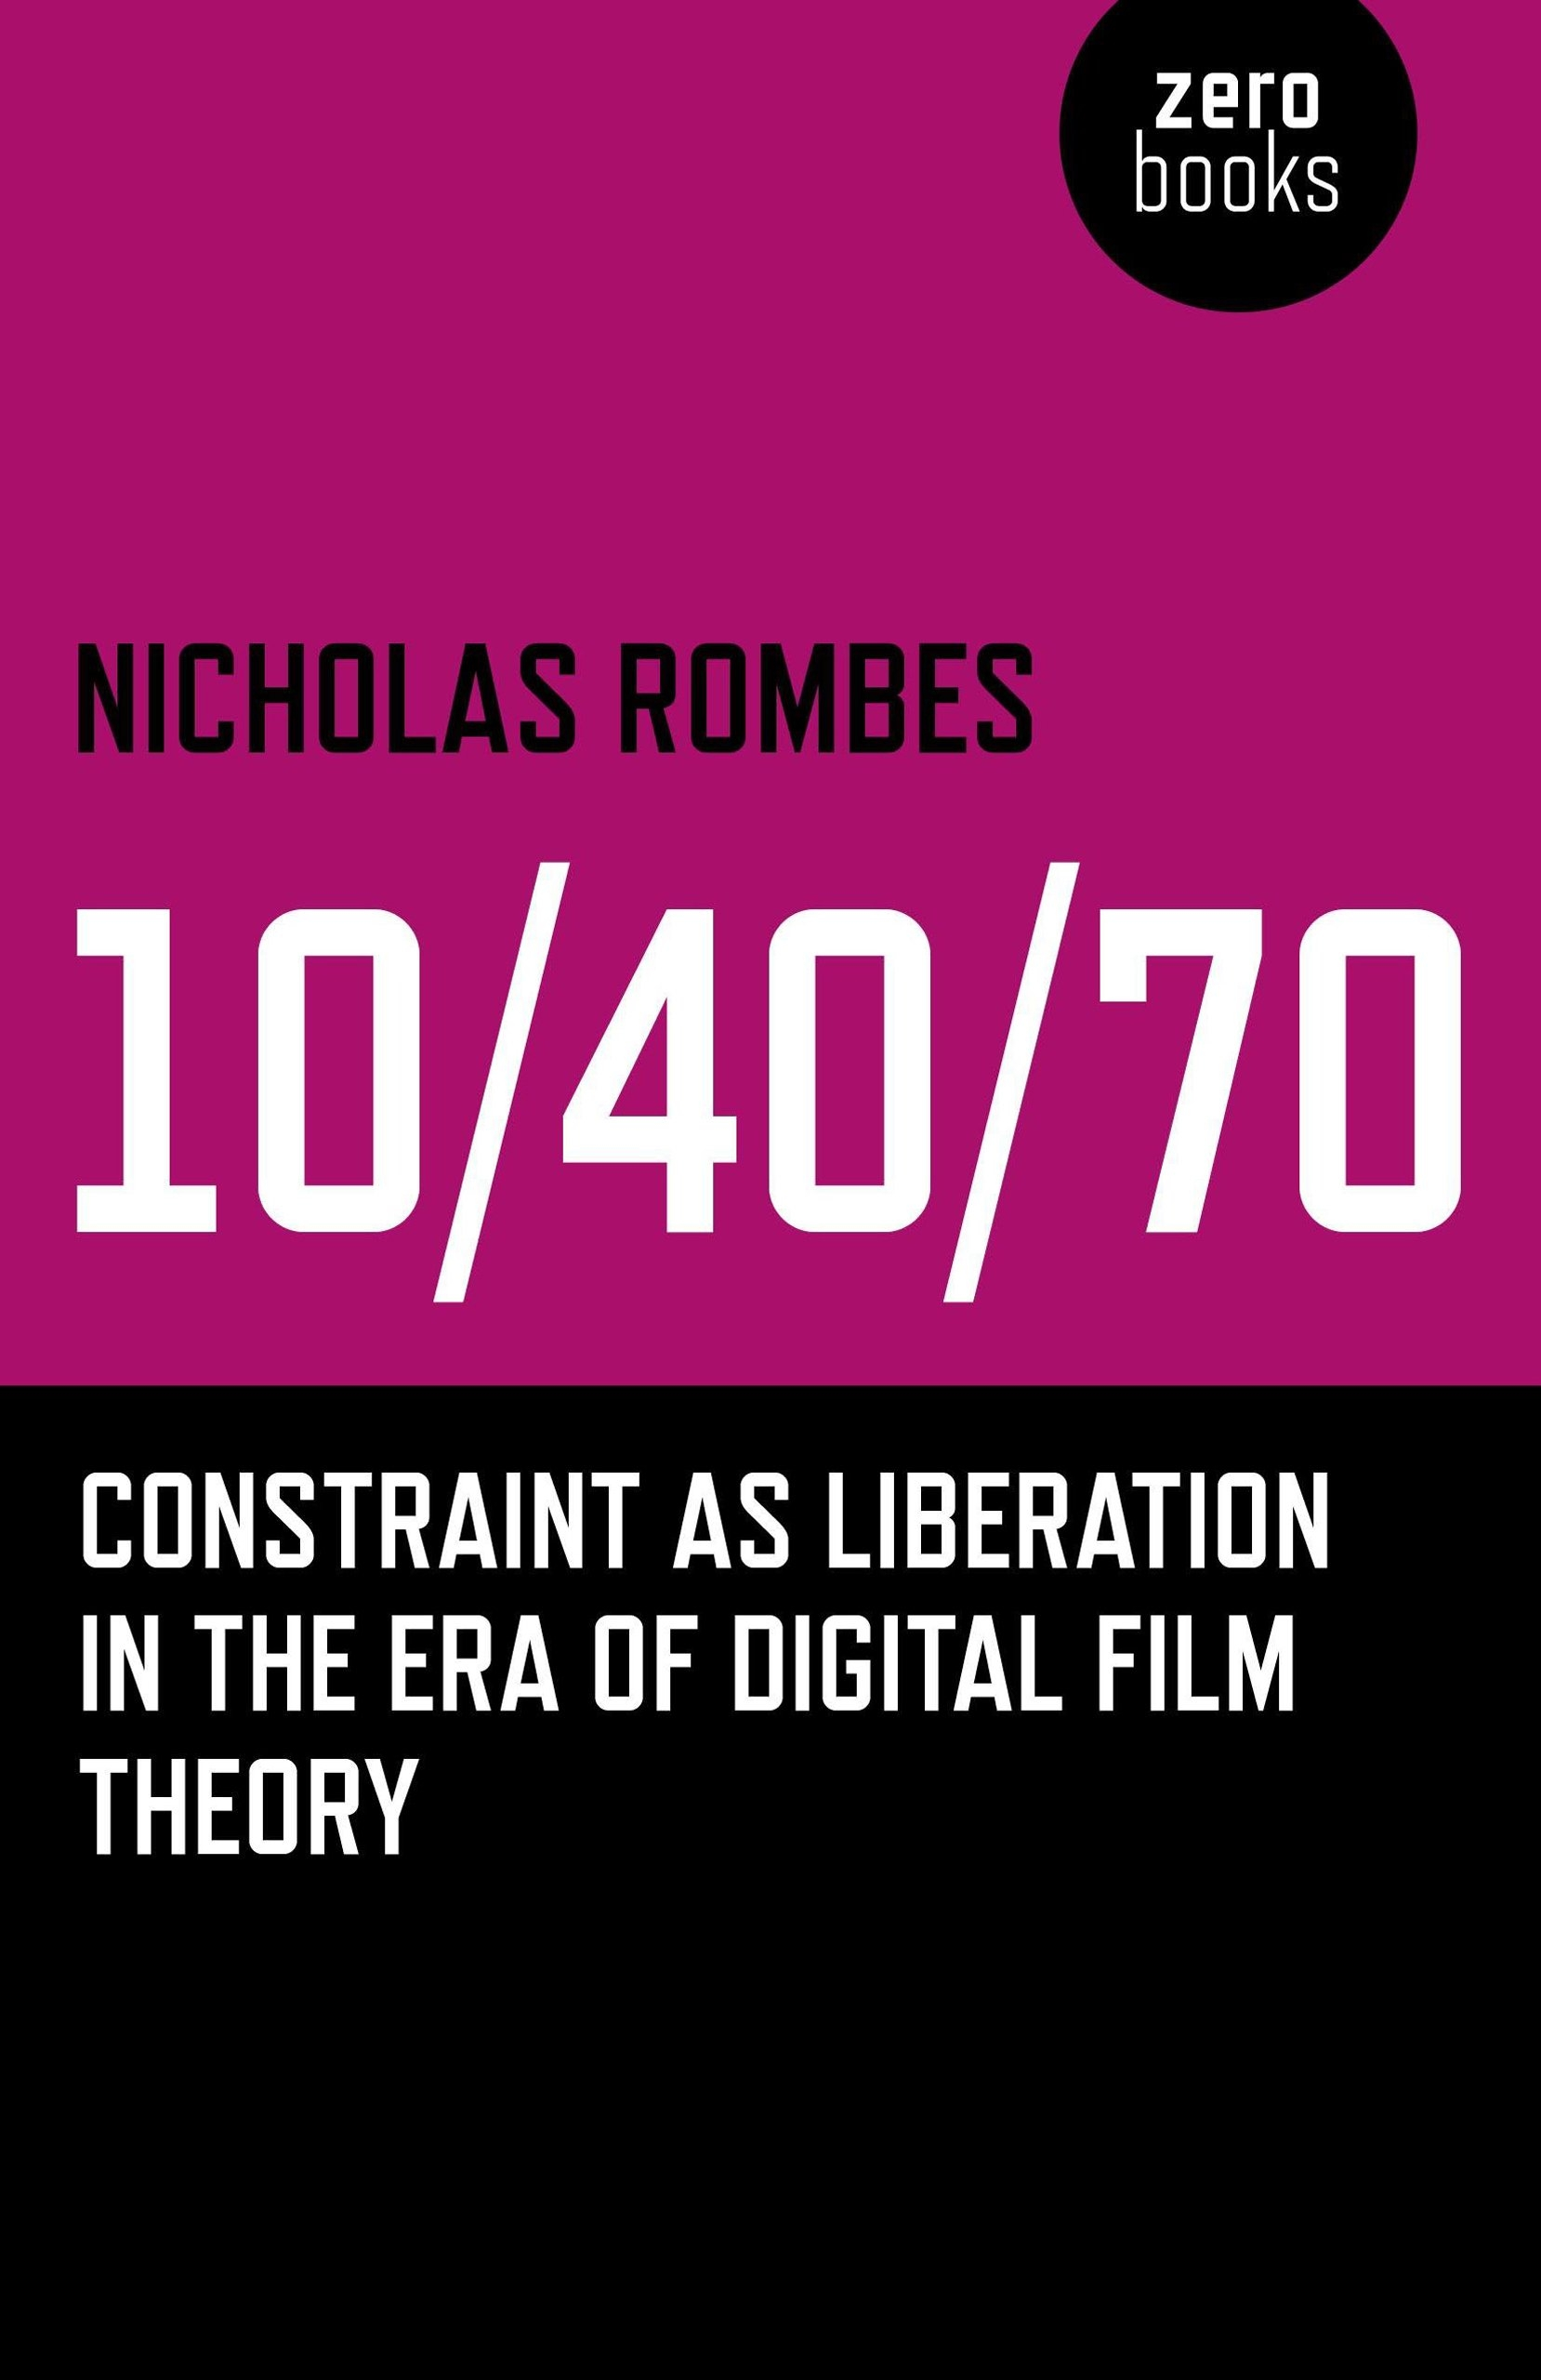 Buy 10/40/70: Constraint as Liberation in the Era of Digital Film Theory